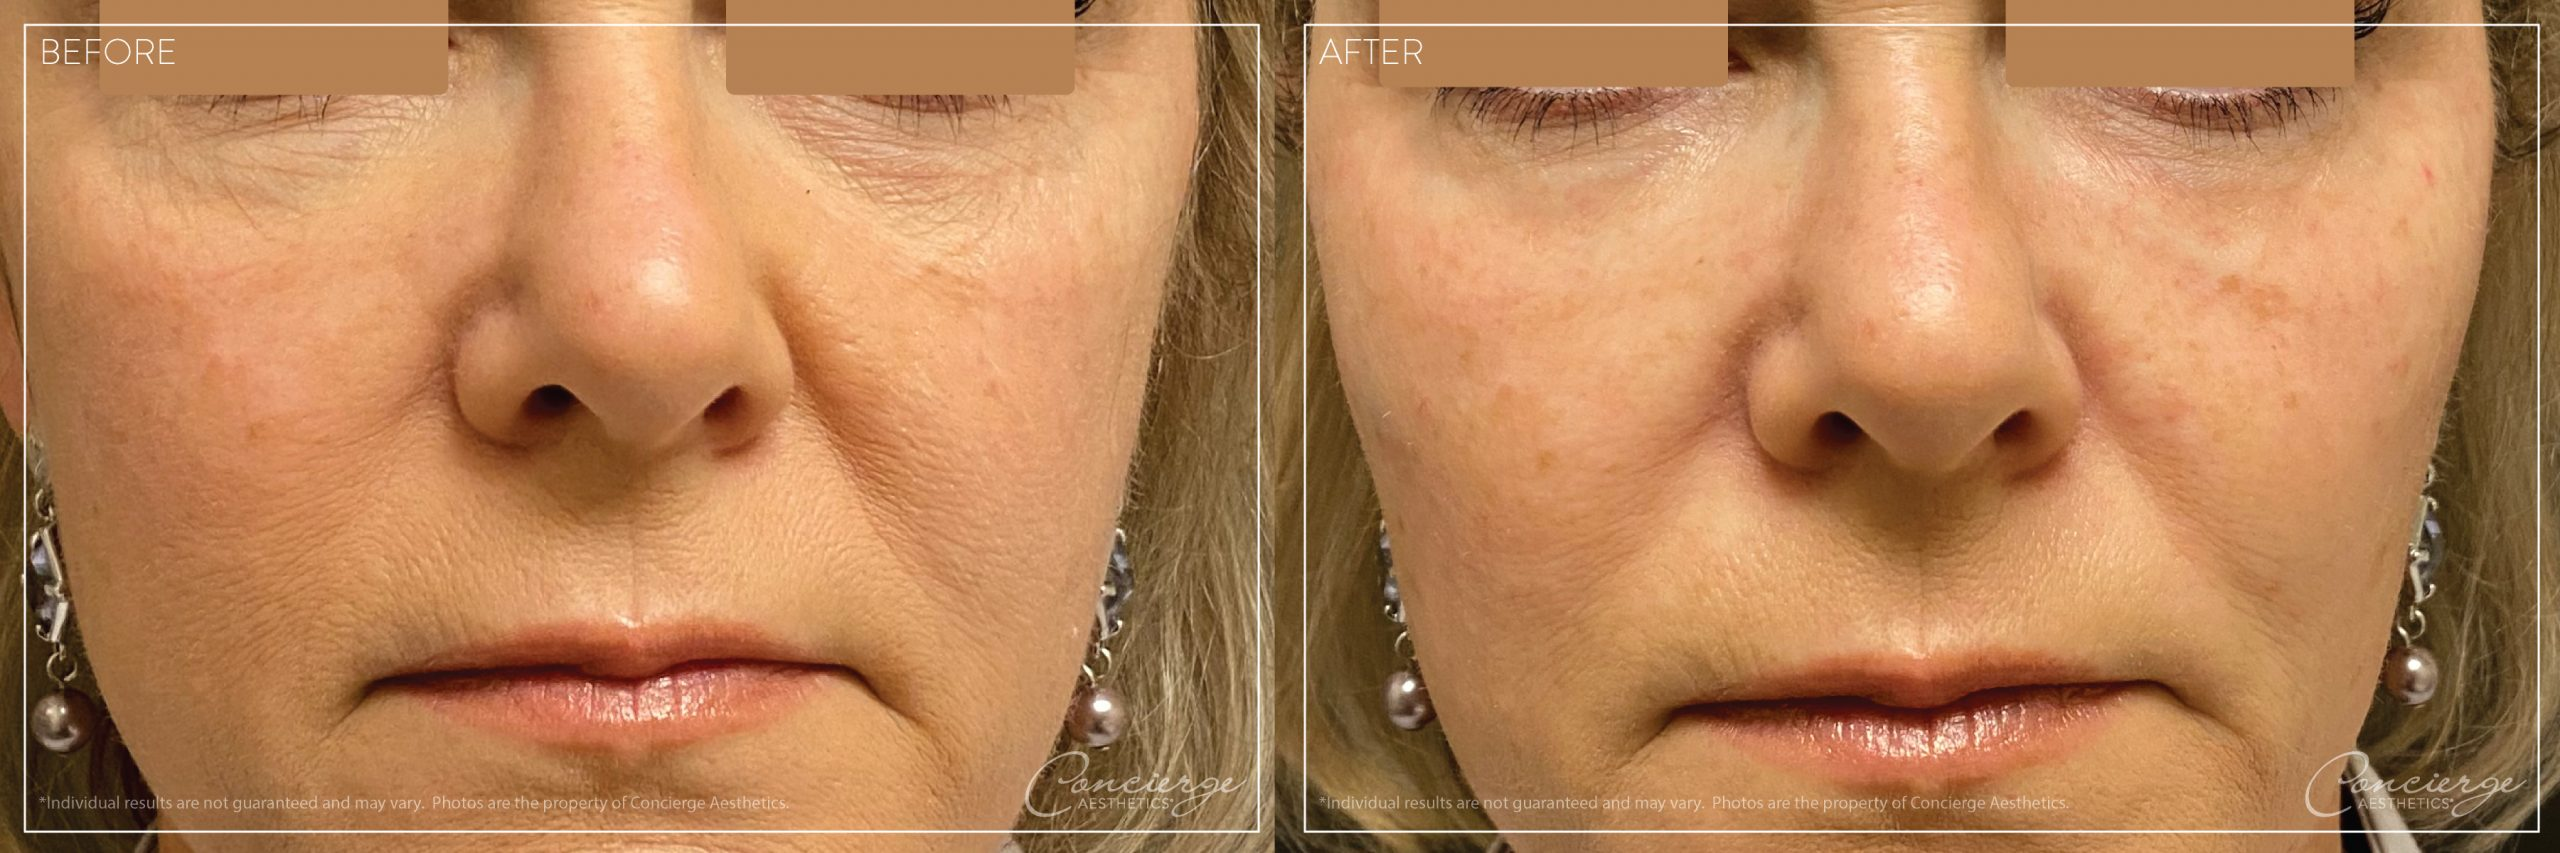 Cheeks and Under Eyes - Voluma and Volbella - Before and After Photo - Concierge Aesthetics